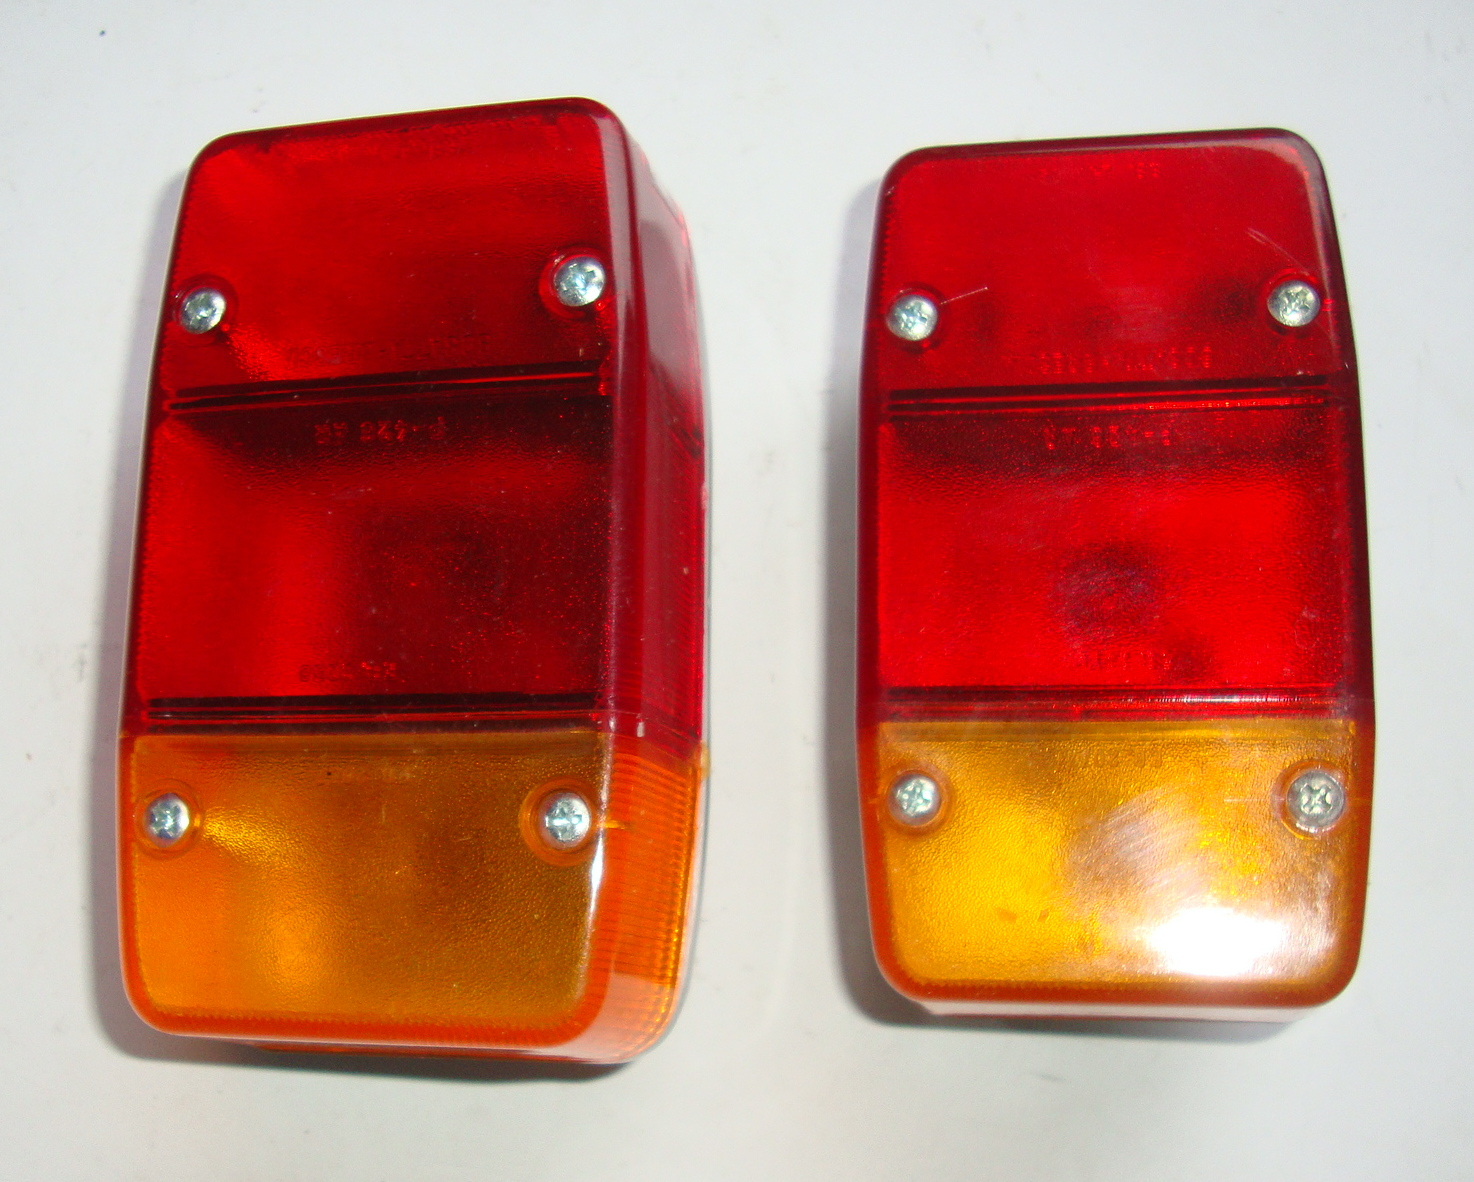 Taillights, Ape 50 / 250 / 350 / 400 / 500 / MP / MPV / TL / TM / Pentaro